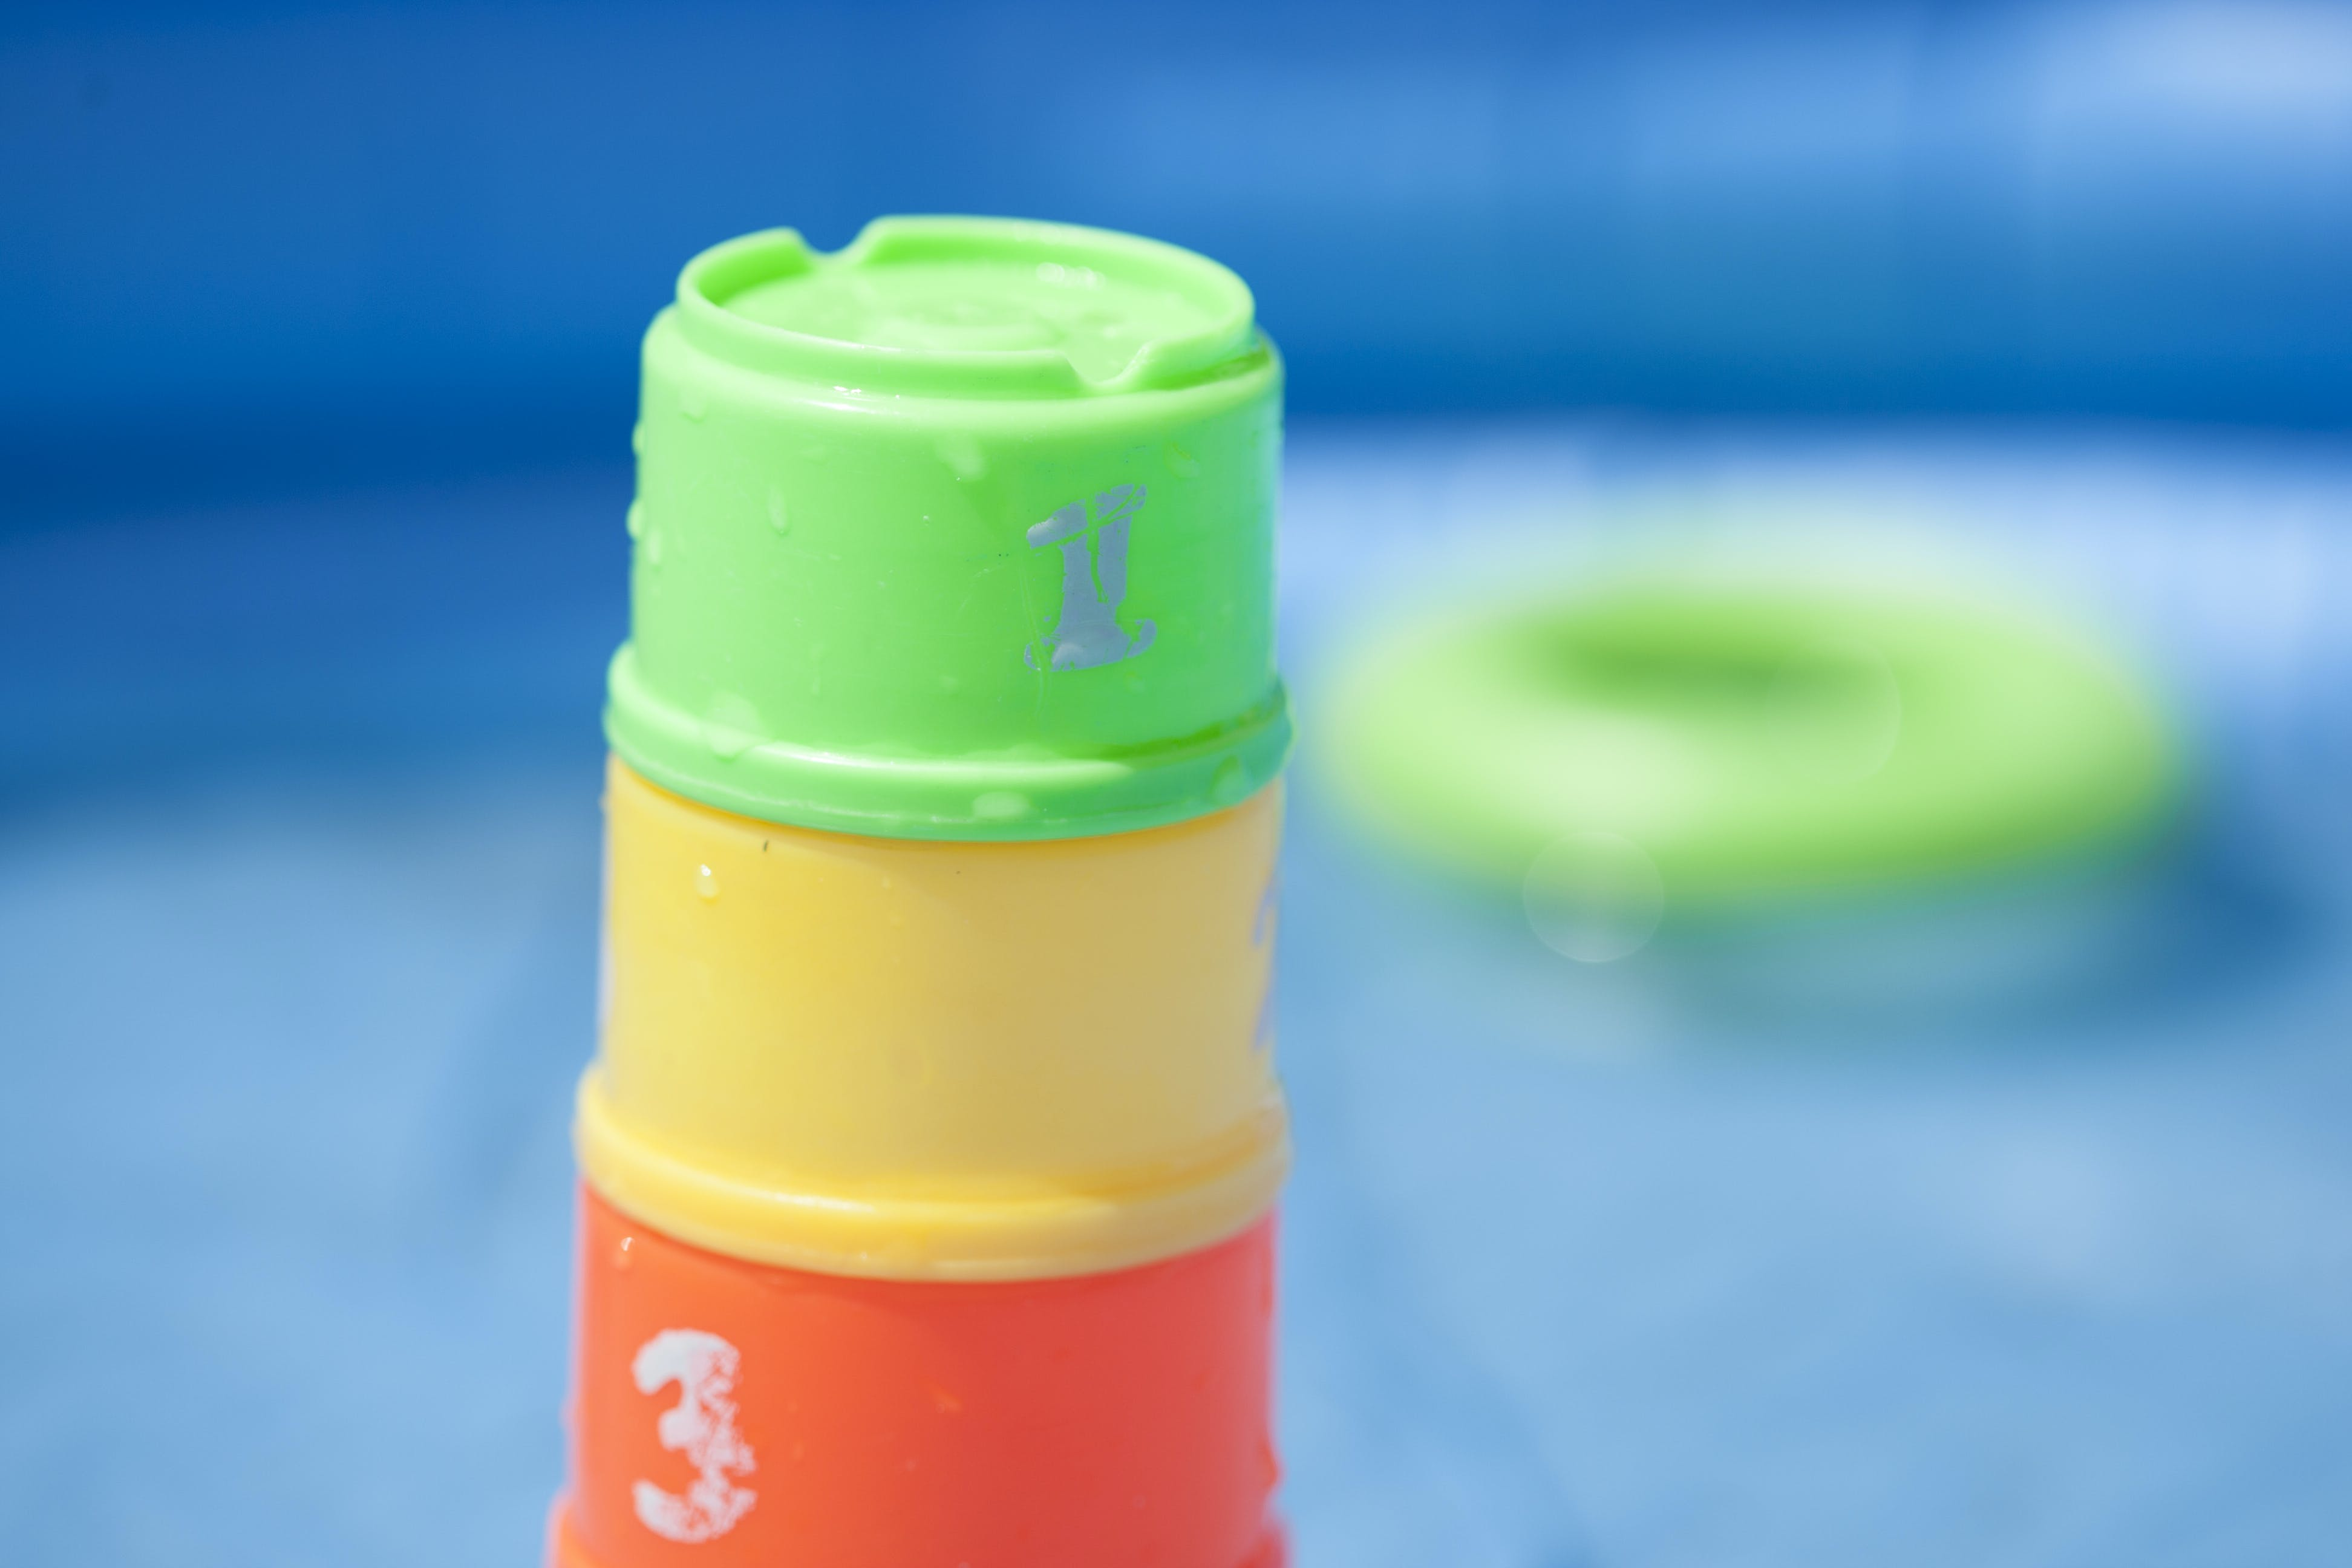 Free stock photo of pool, pool safety, stacking cups, swimming